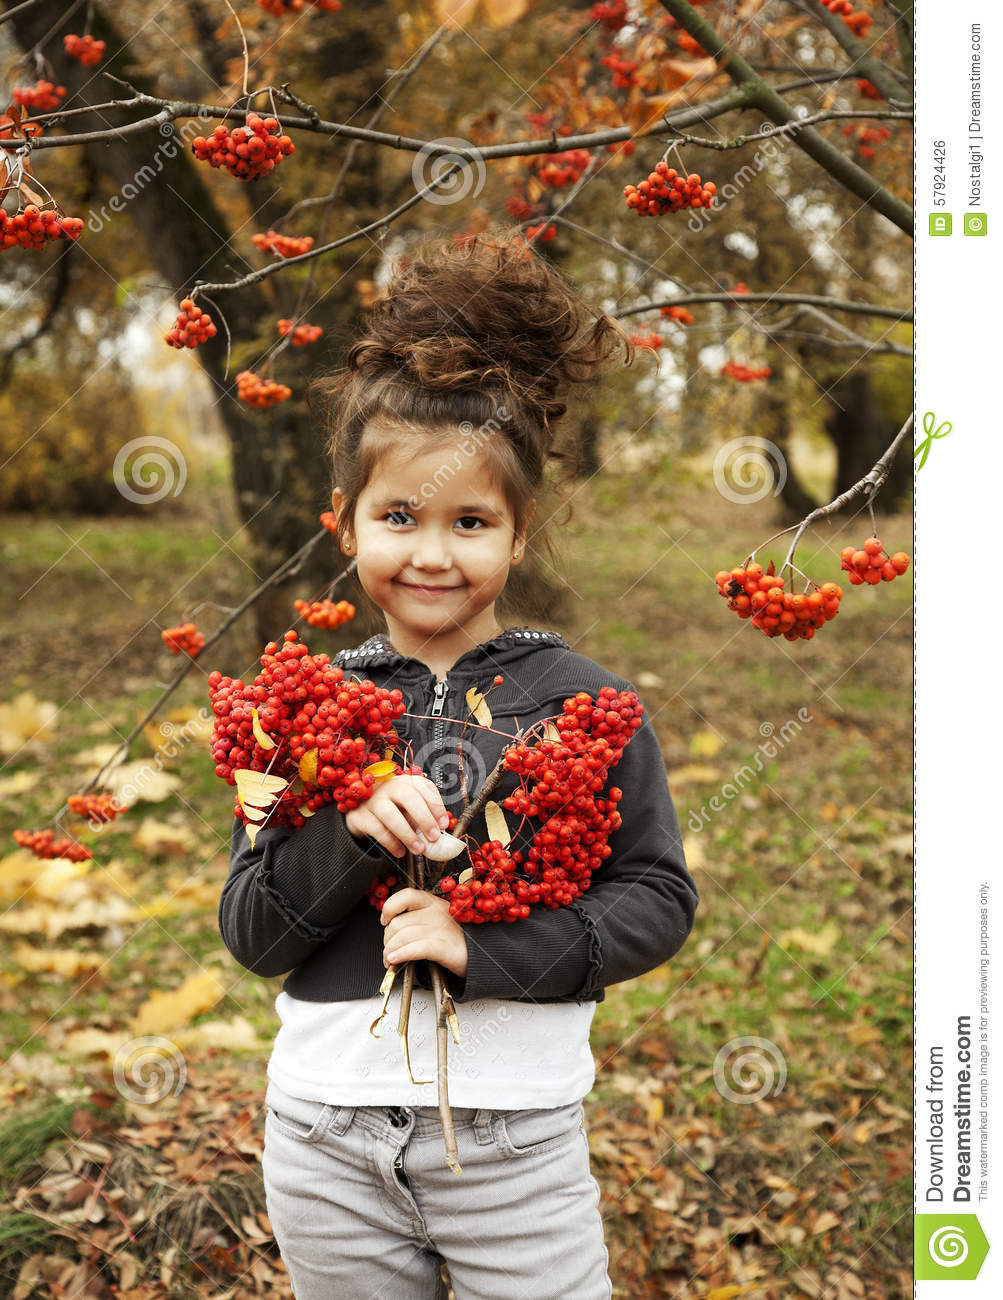 Outstanding Cute Girl With Dark Curly Hair In The Autumn Forest Stock Photo Short Hairstyles For Black Women Fulllsitofus